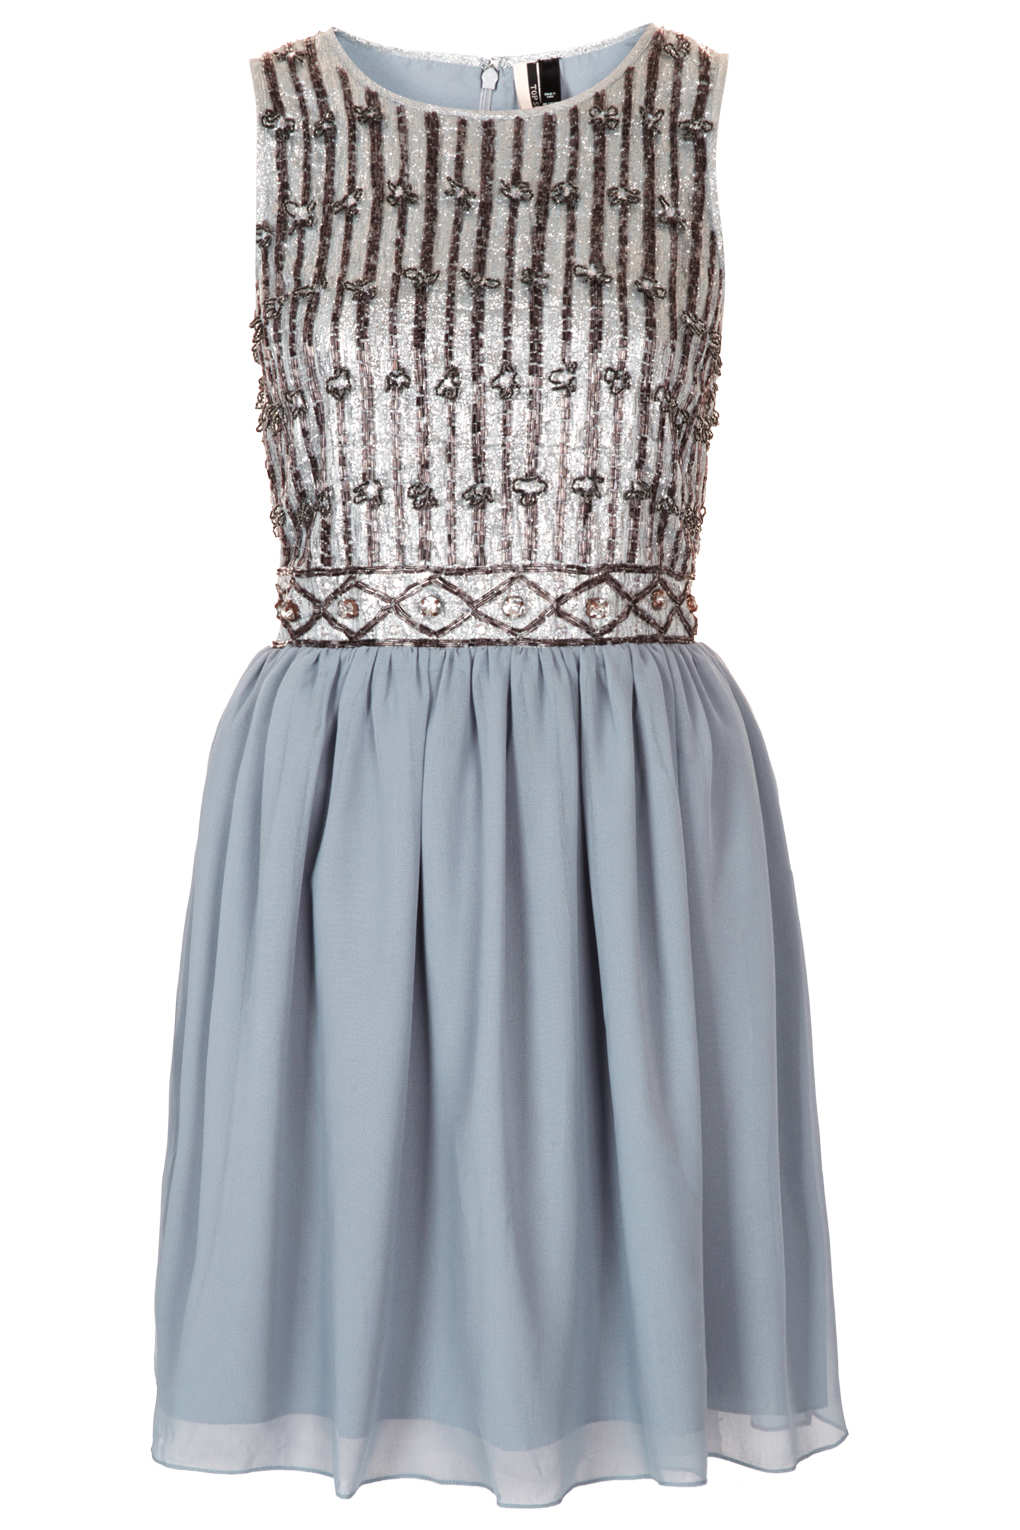 Lyst - Topshop Embellished Prom Dress in Metallic